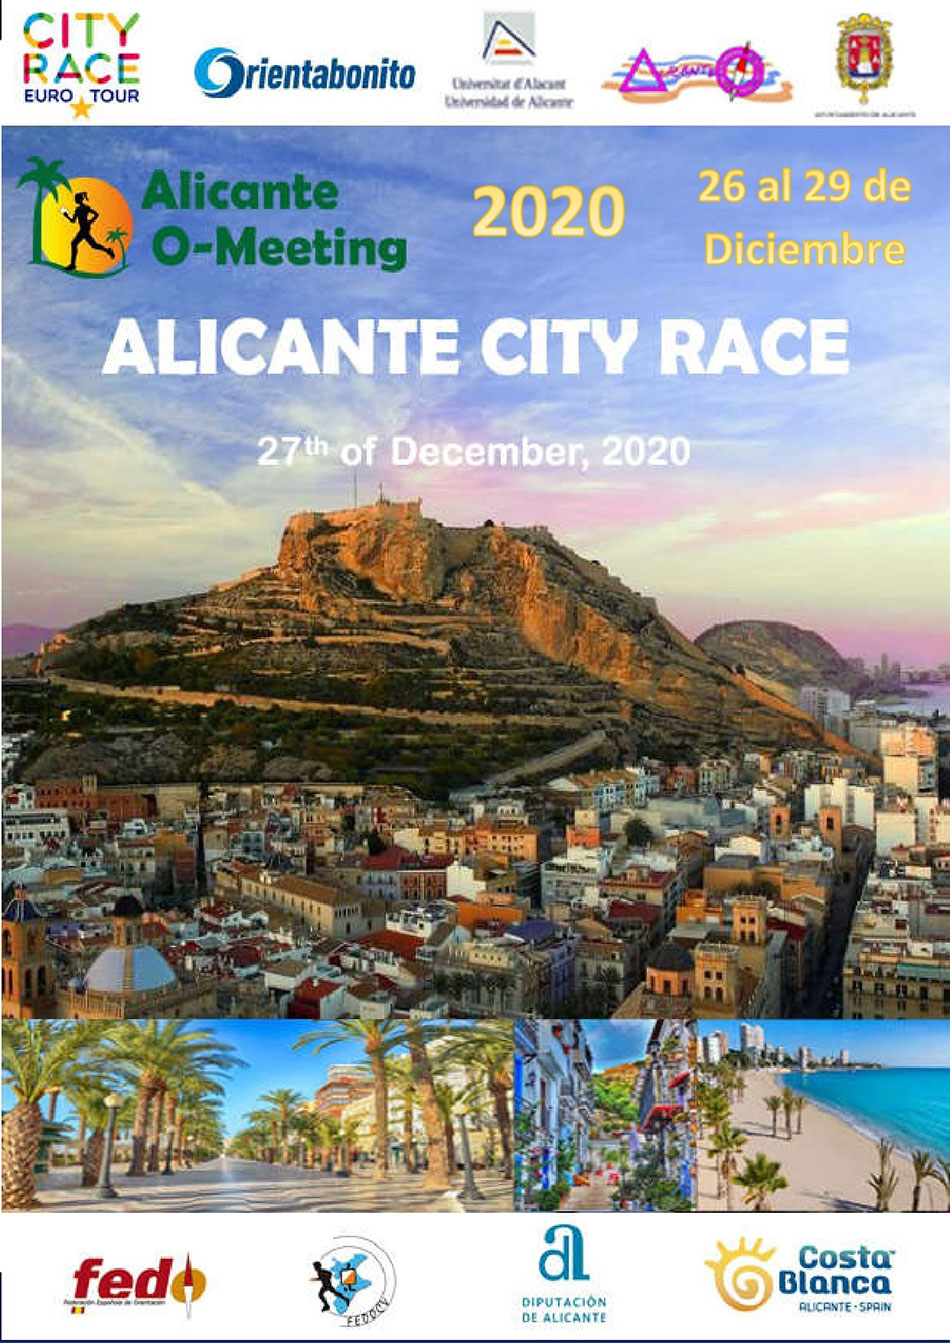 Alicante City Race 2020